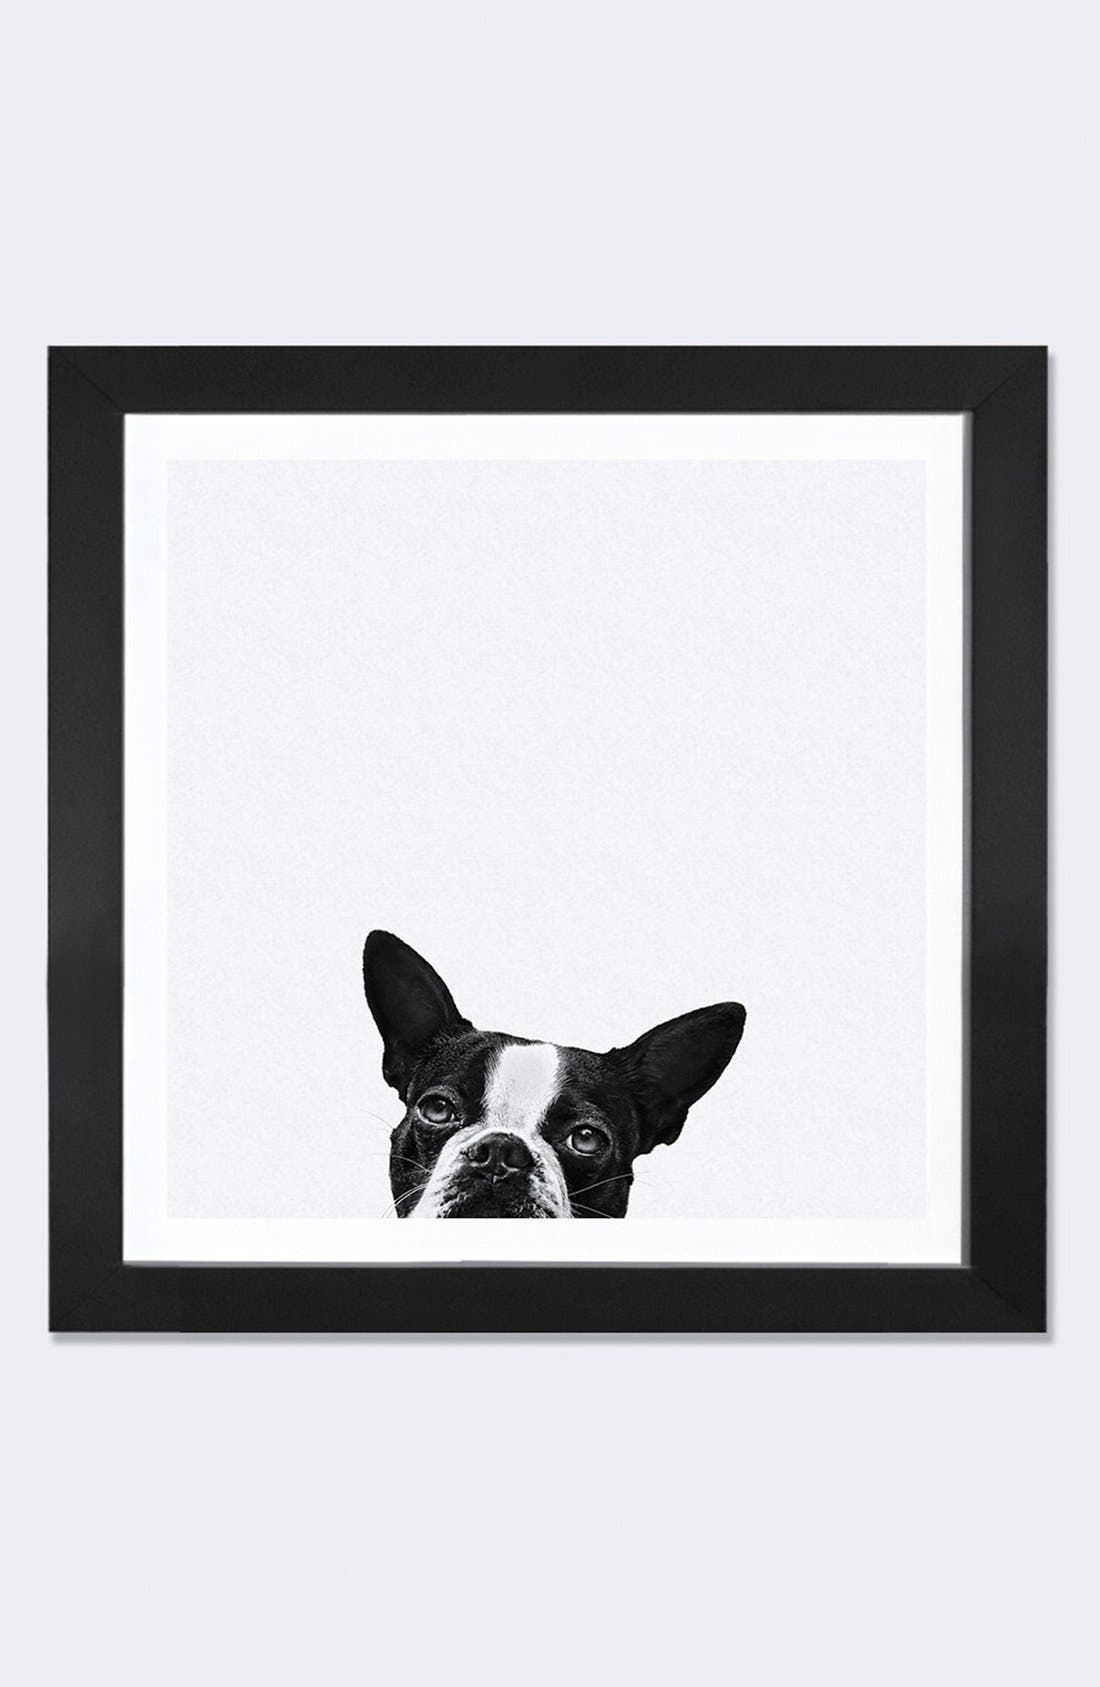 'Loyalty' Framed Fine Art Print,                         Main,                         color, 001